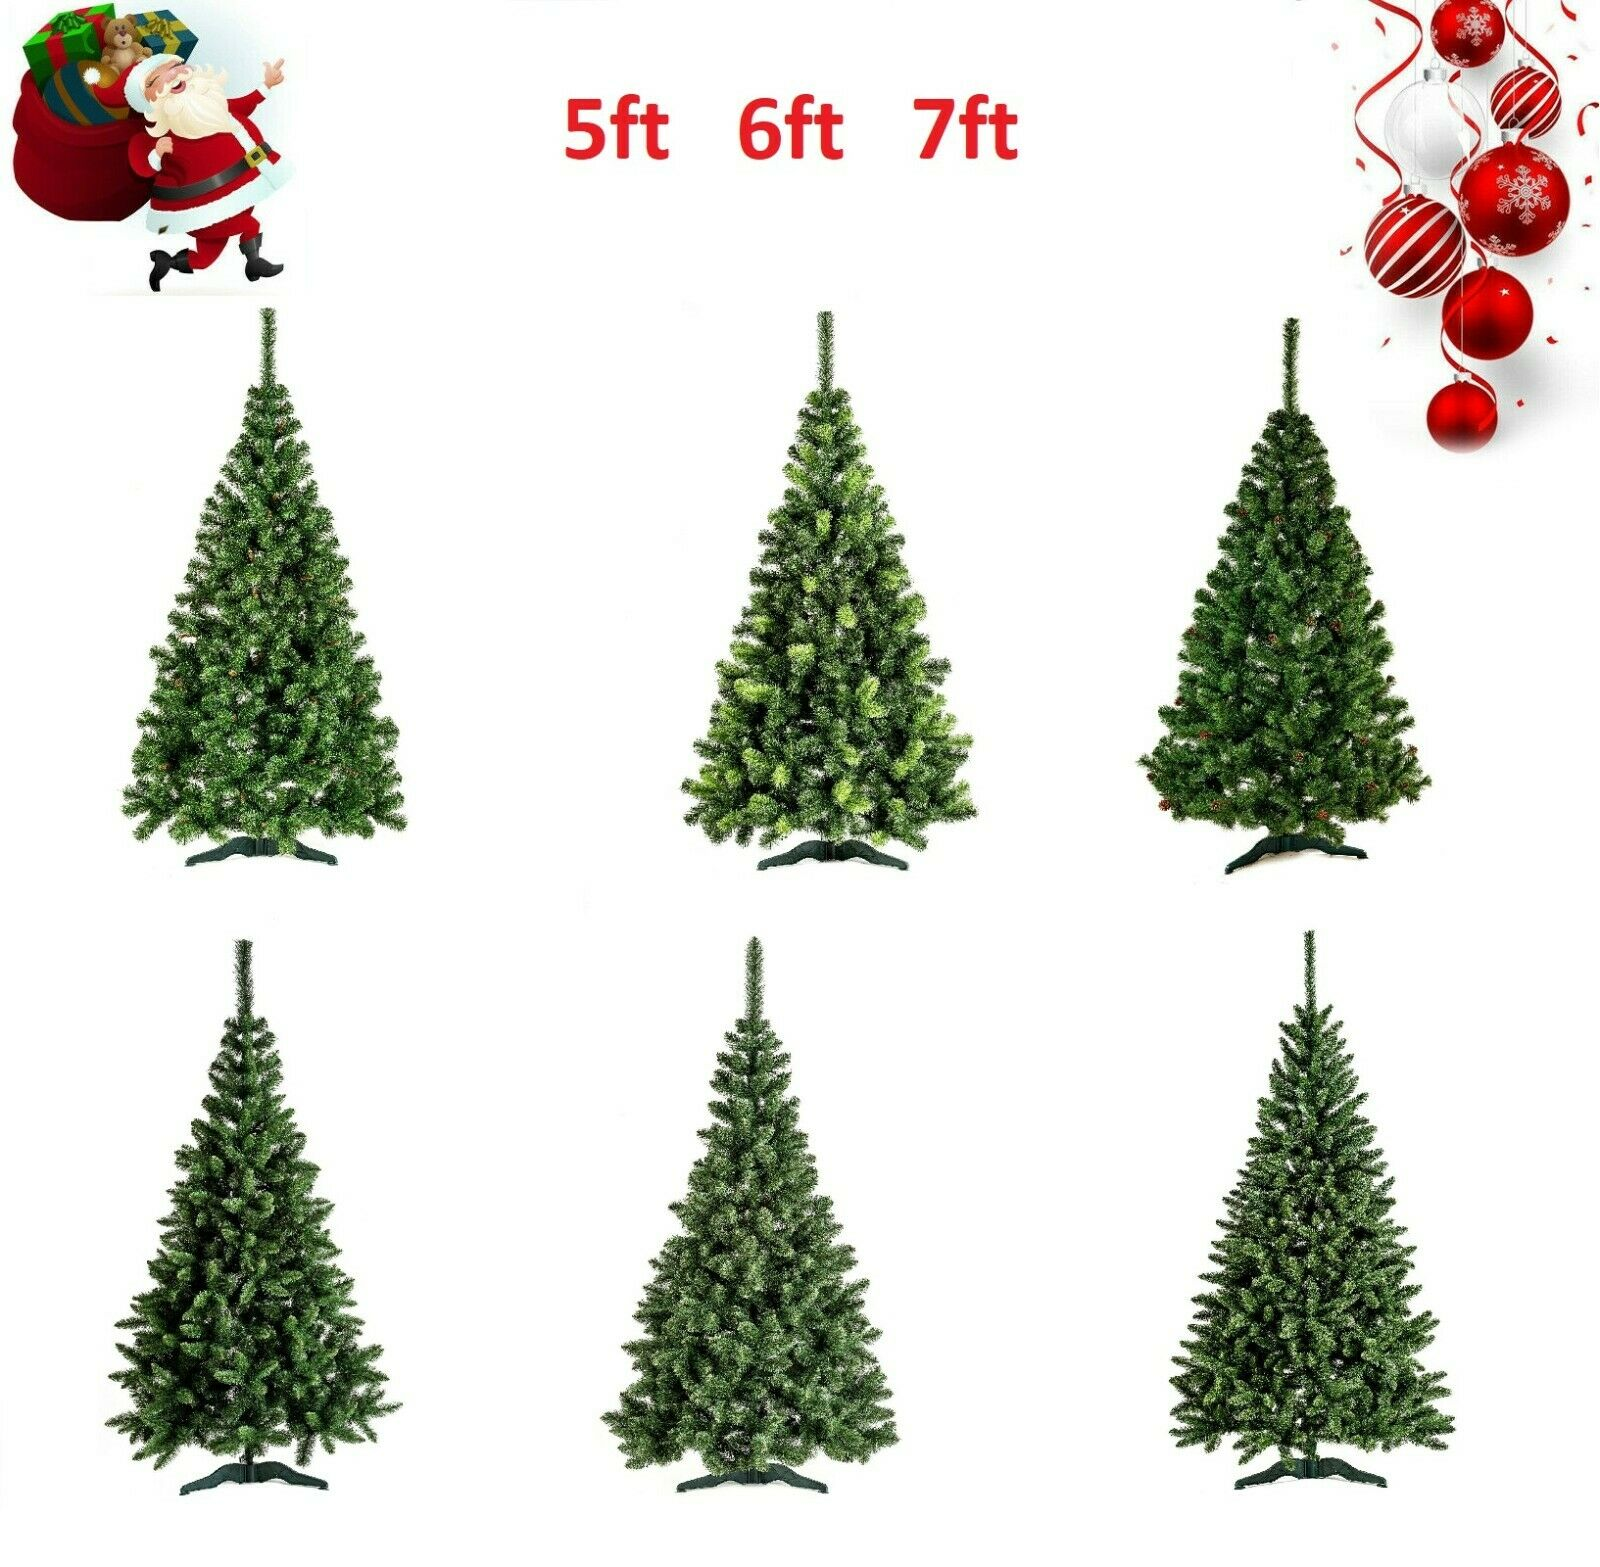 5 6 7FT LARGE ARTIFICIAL CHRISTMAS TREE SNOW & CONES REALISTIC XMAS DECORATION